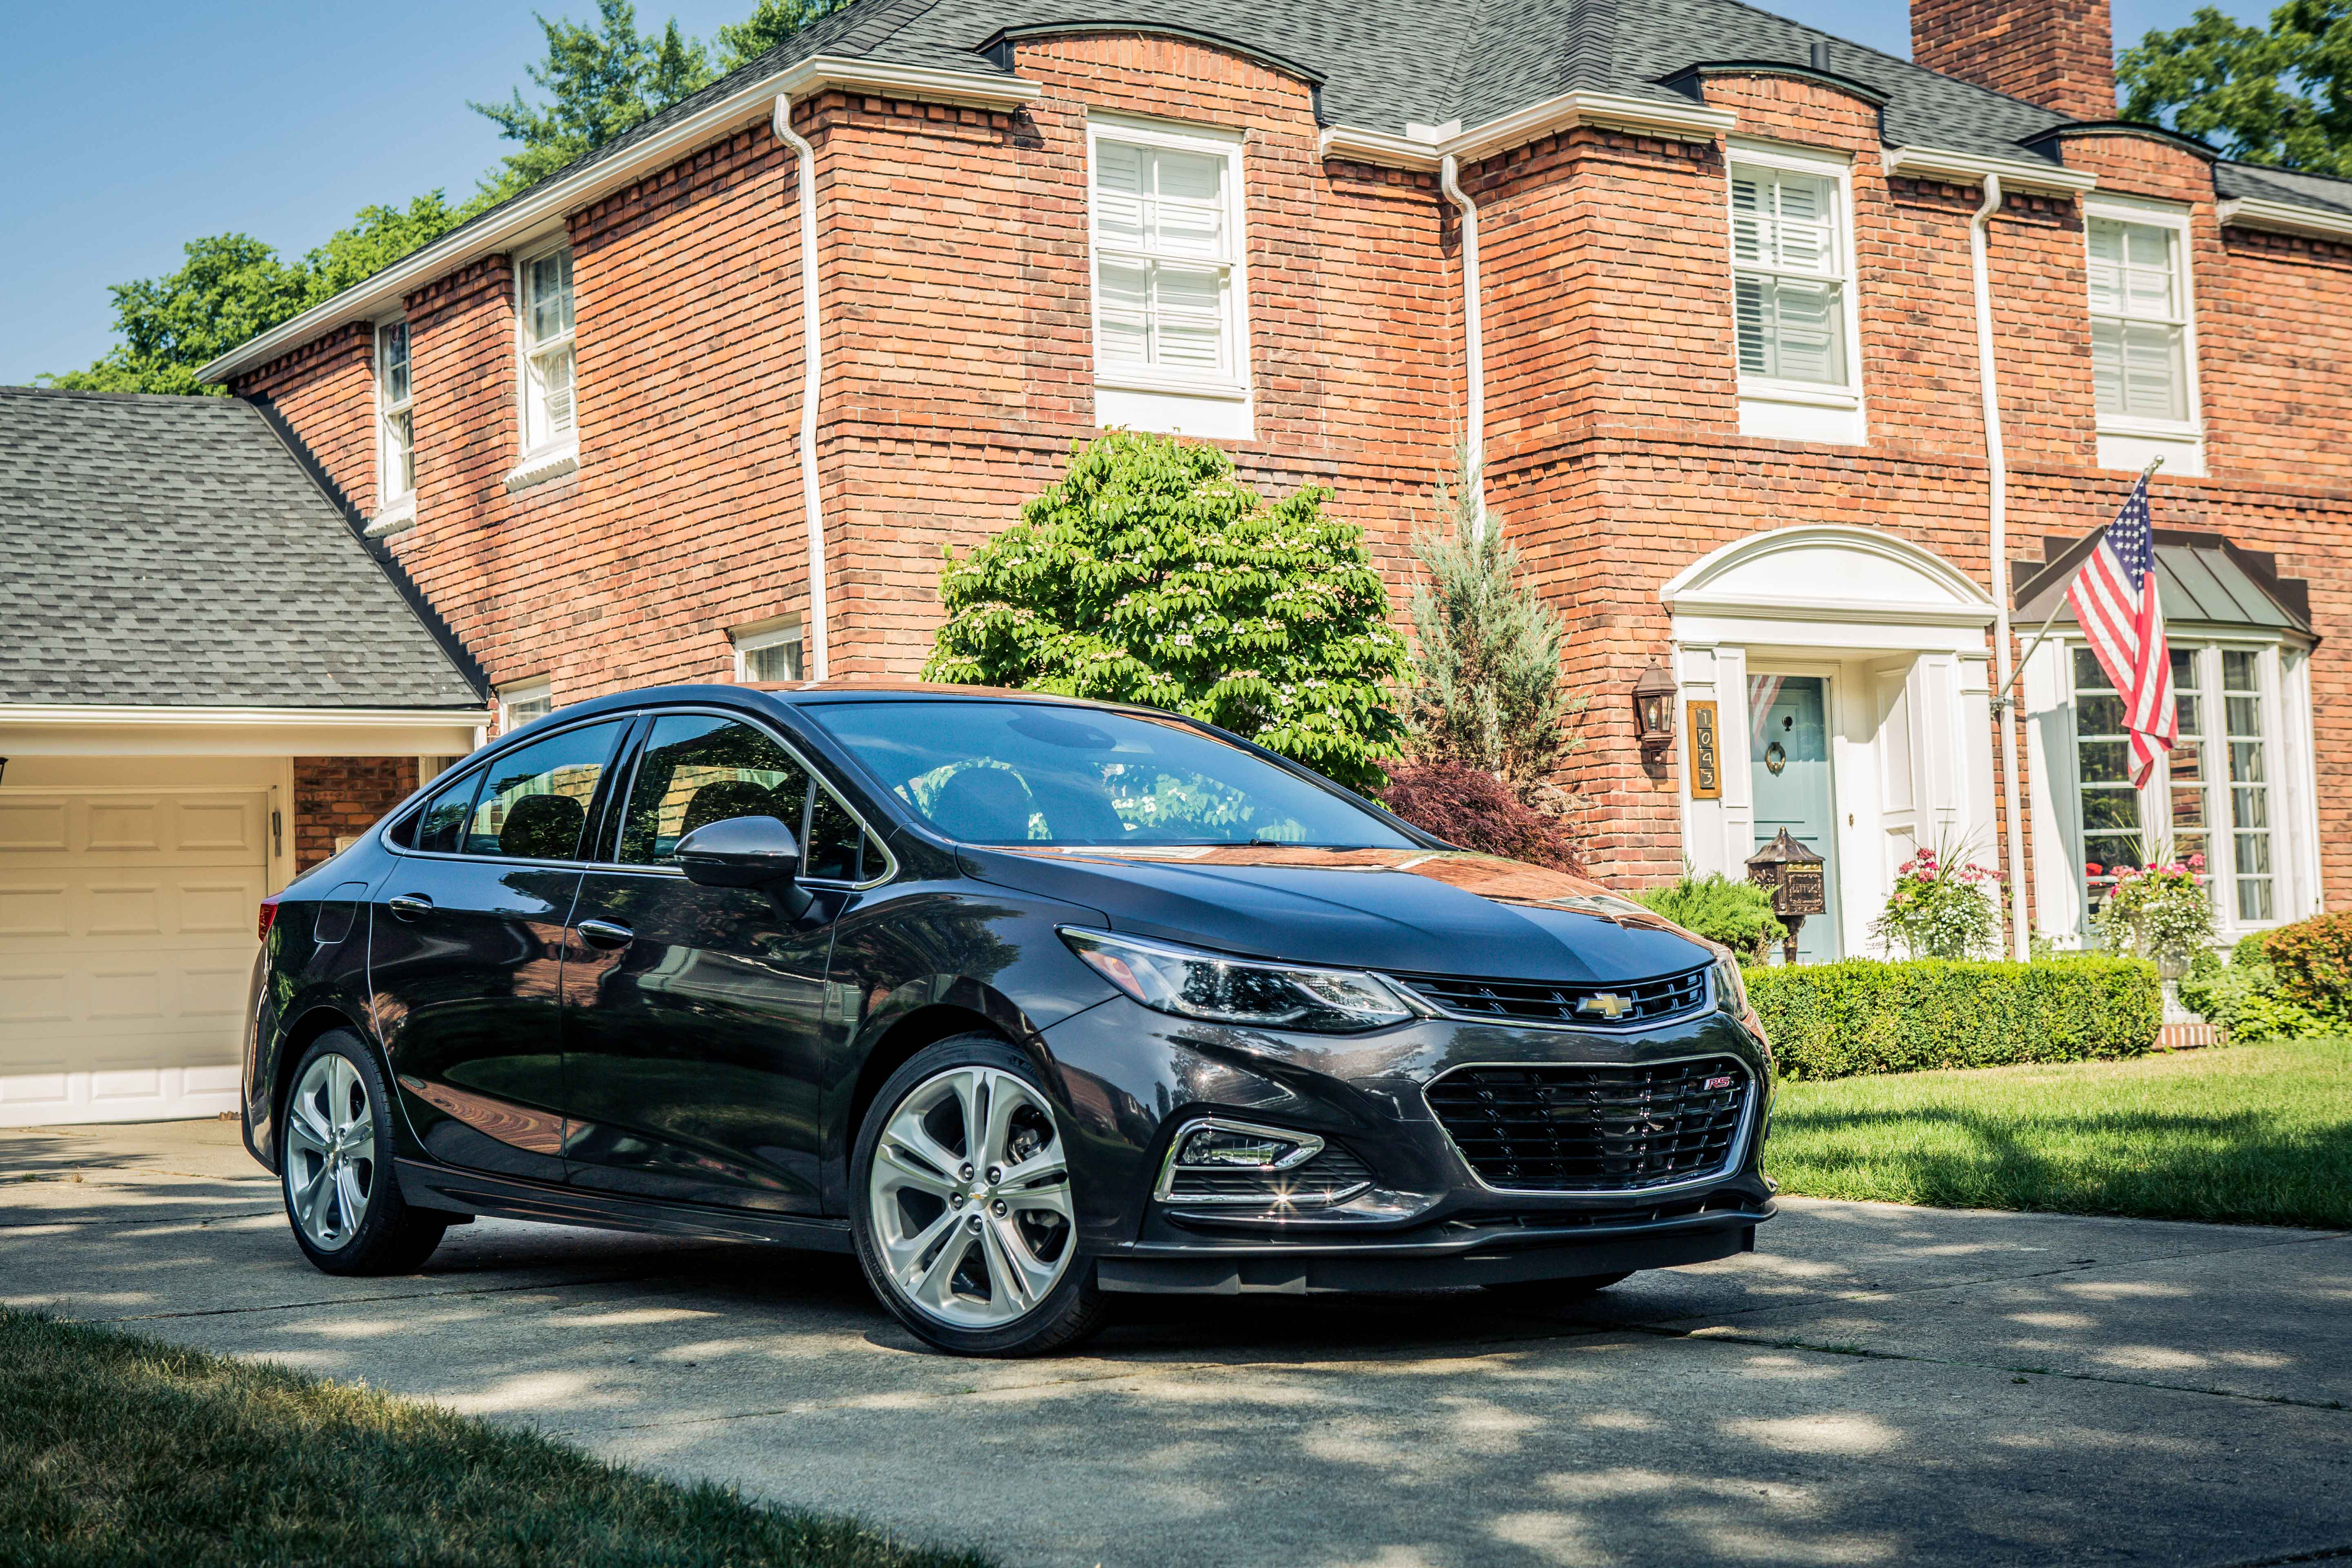 Most Reliable: Chevrolet Cruze